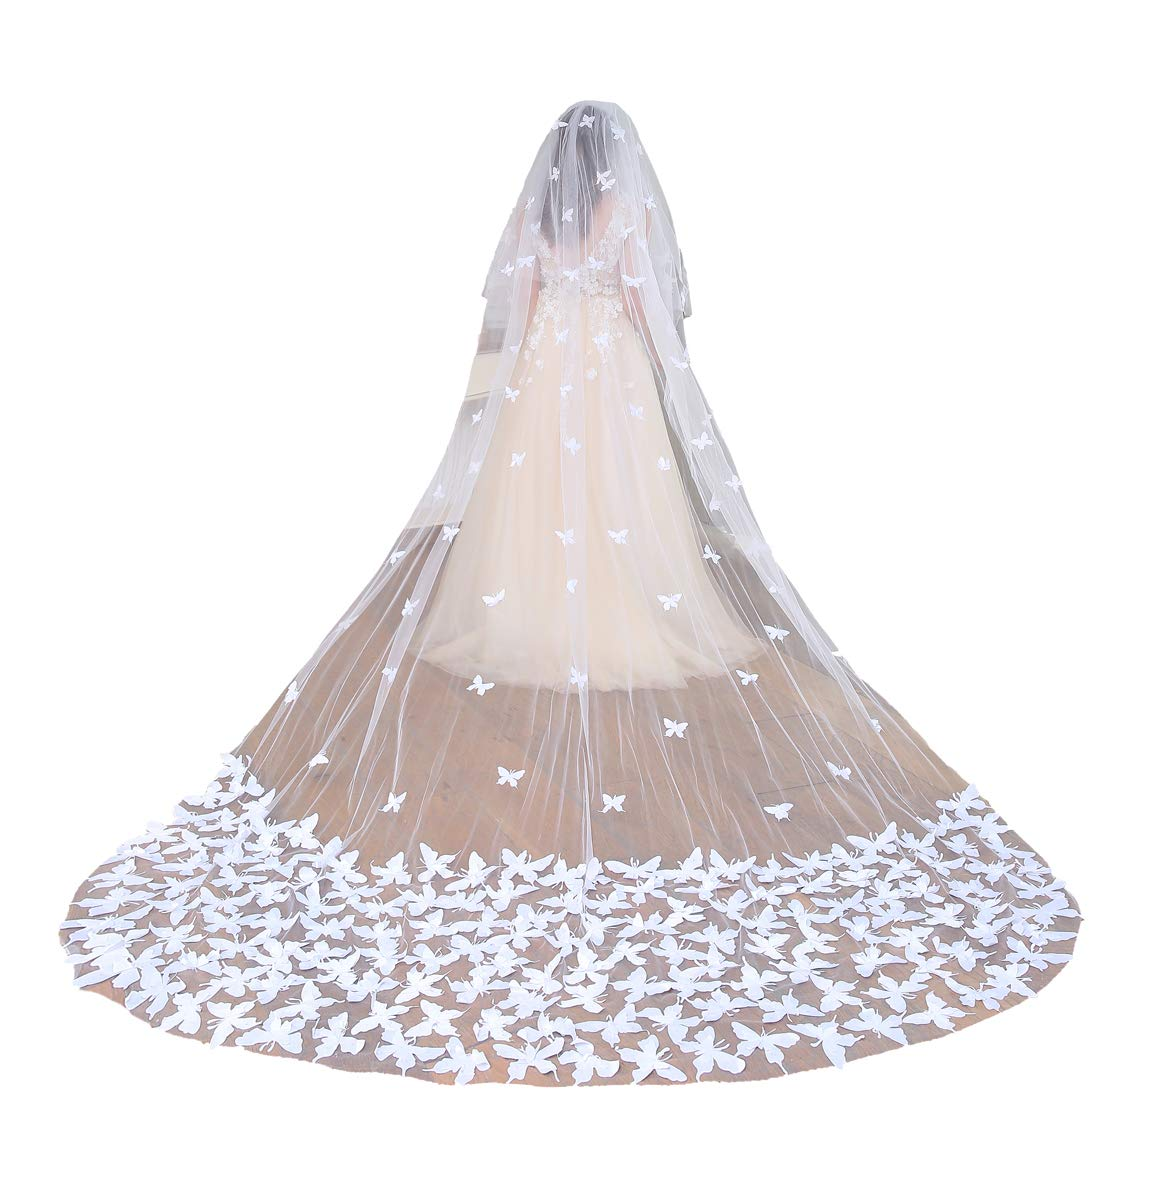 Fenghuavip 2T Wedding Veils Cathedral Veil for Brides with Butterfly Appliques (White) by Fenghuavip